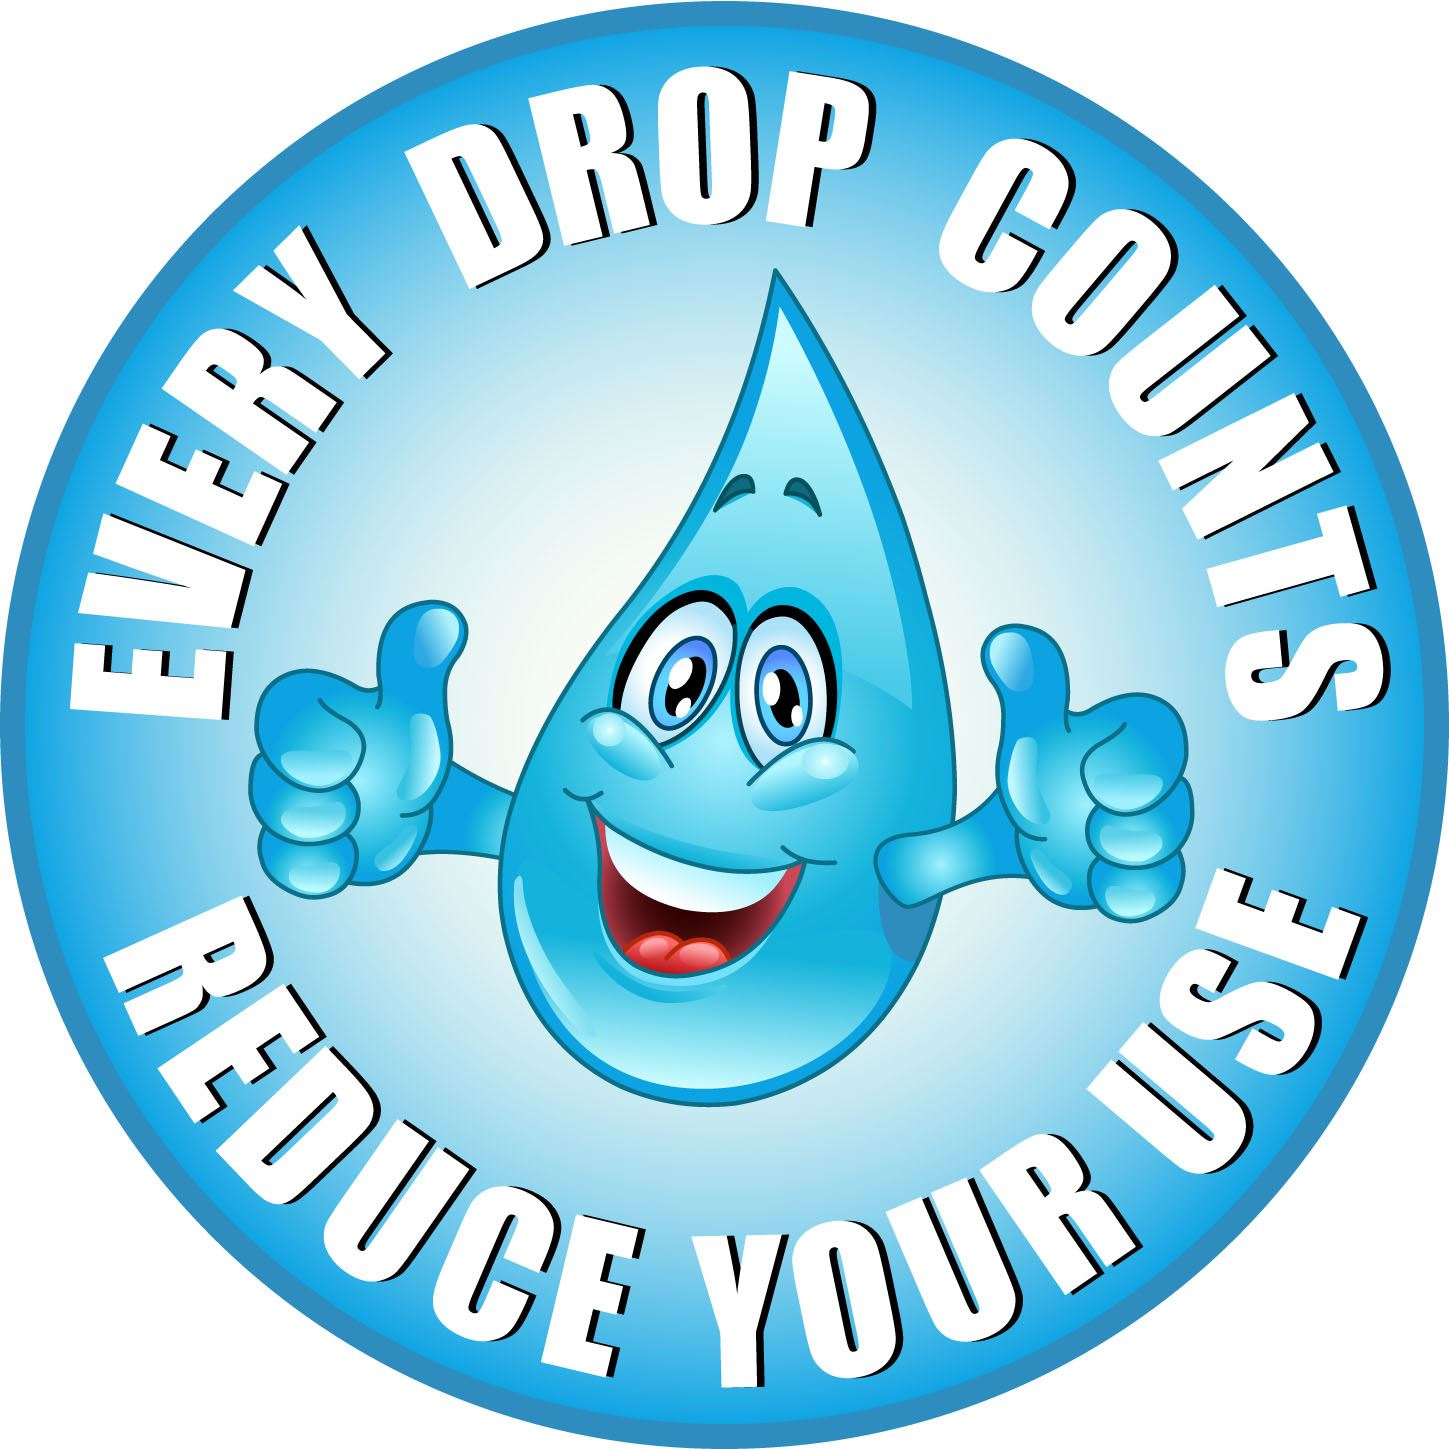 Every Drop Counts - Reduce Your Use